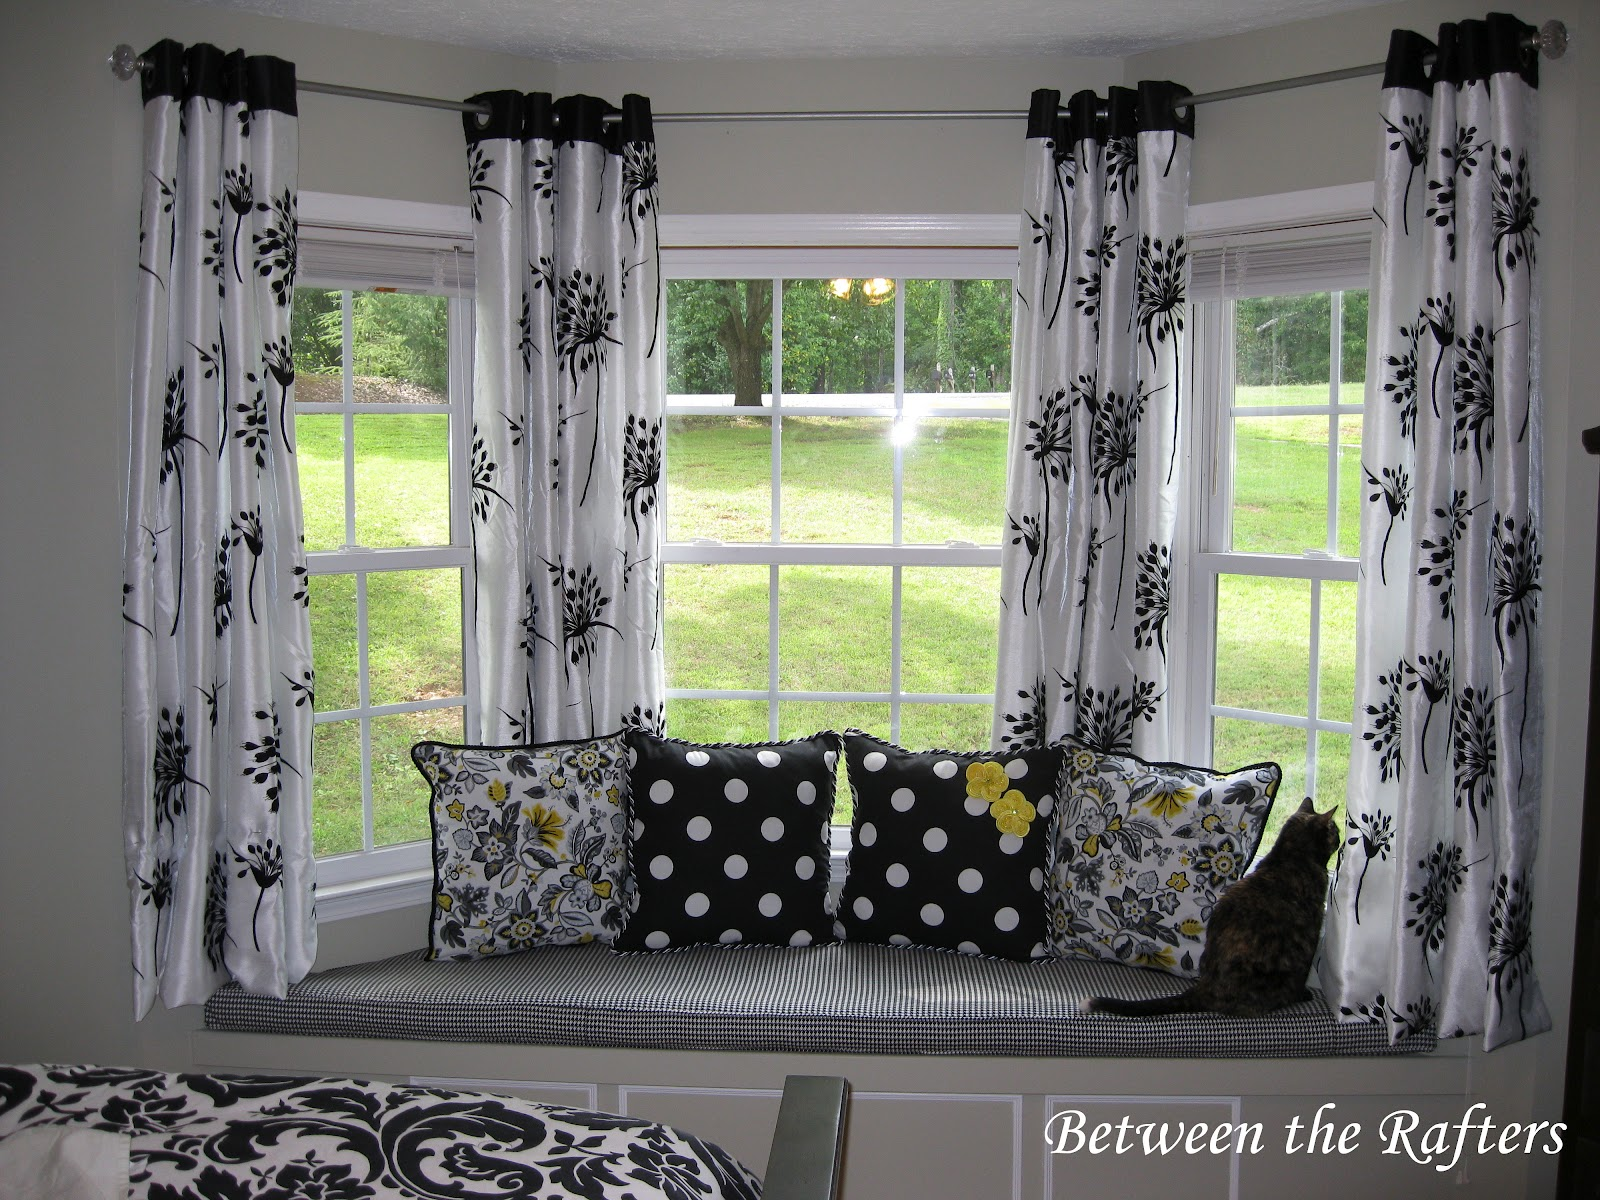 between the rafters do it yourself bay window curtain rod tutorial. Black Bedroom Furniture Sets. Home Design Ideas